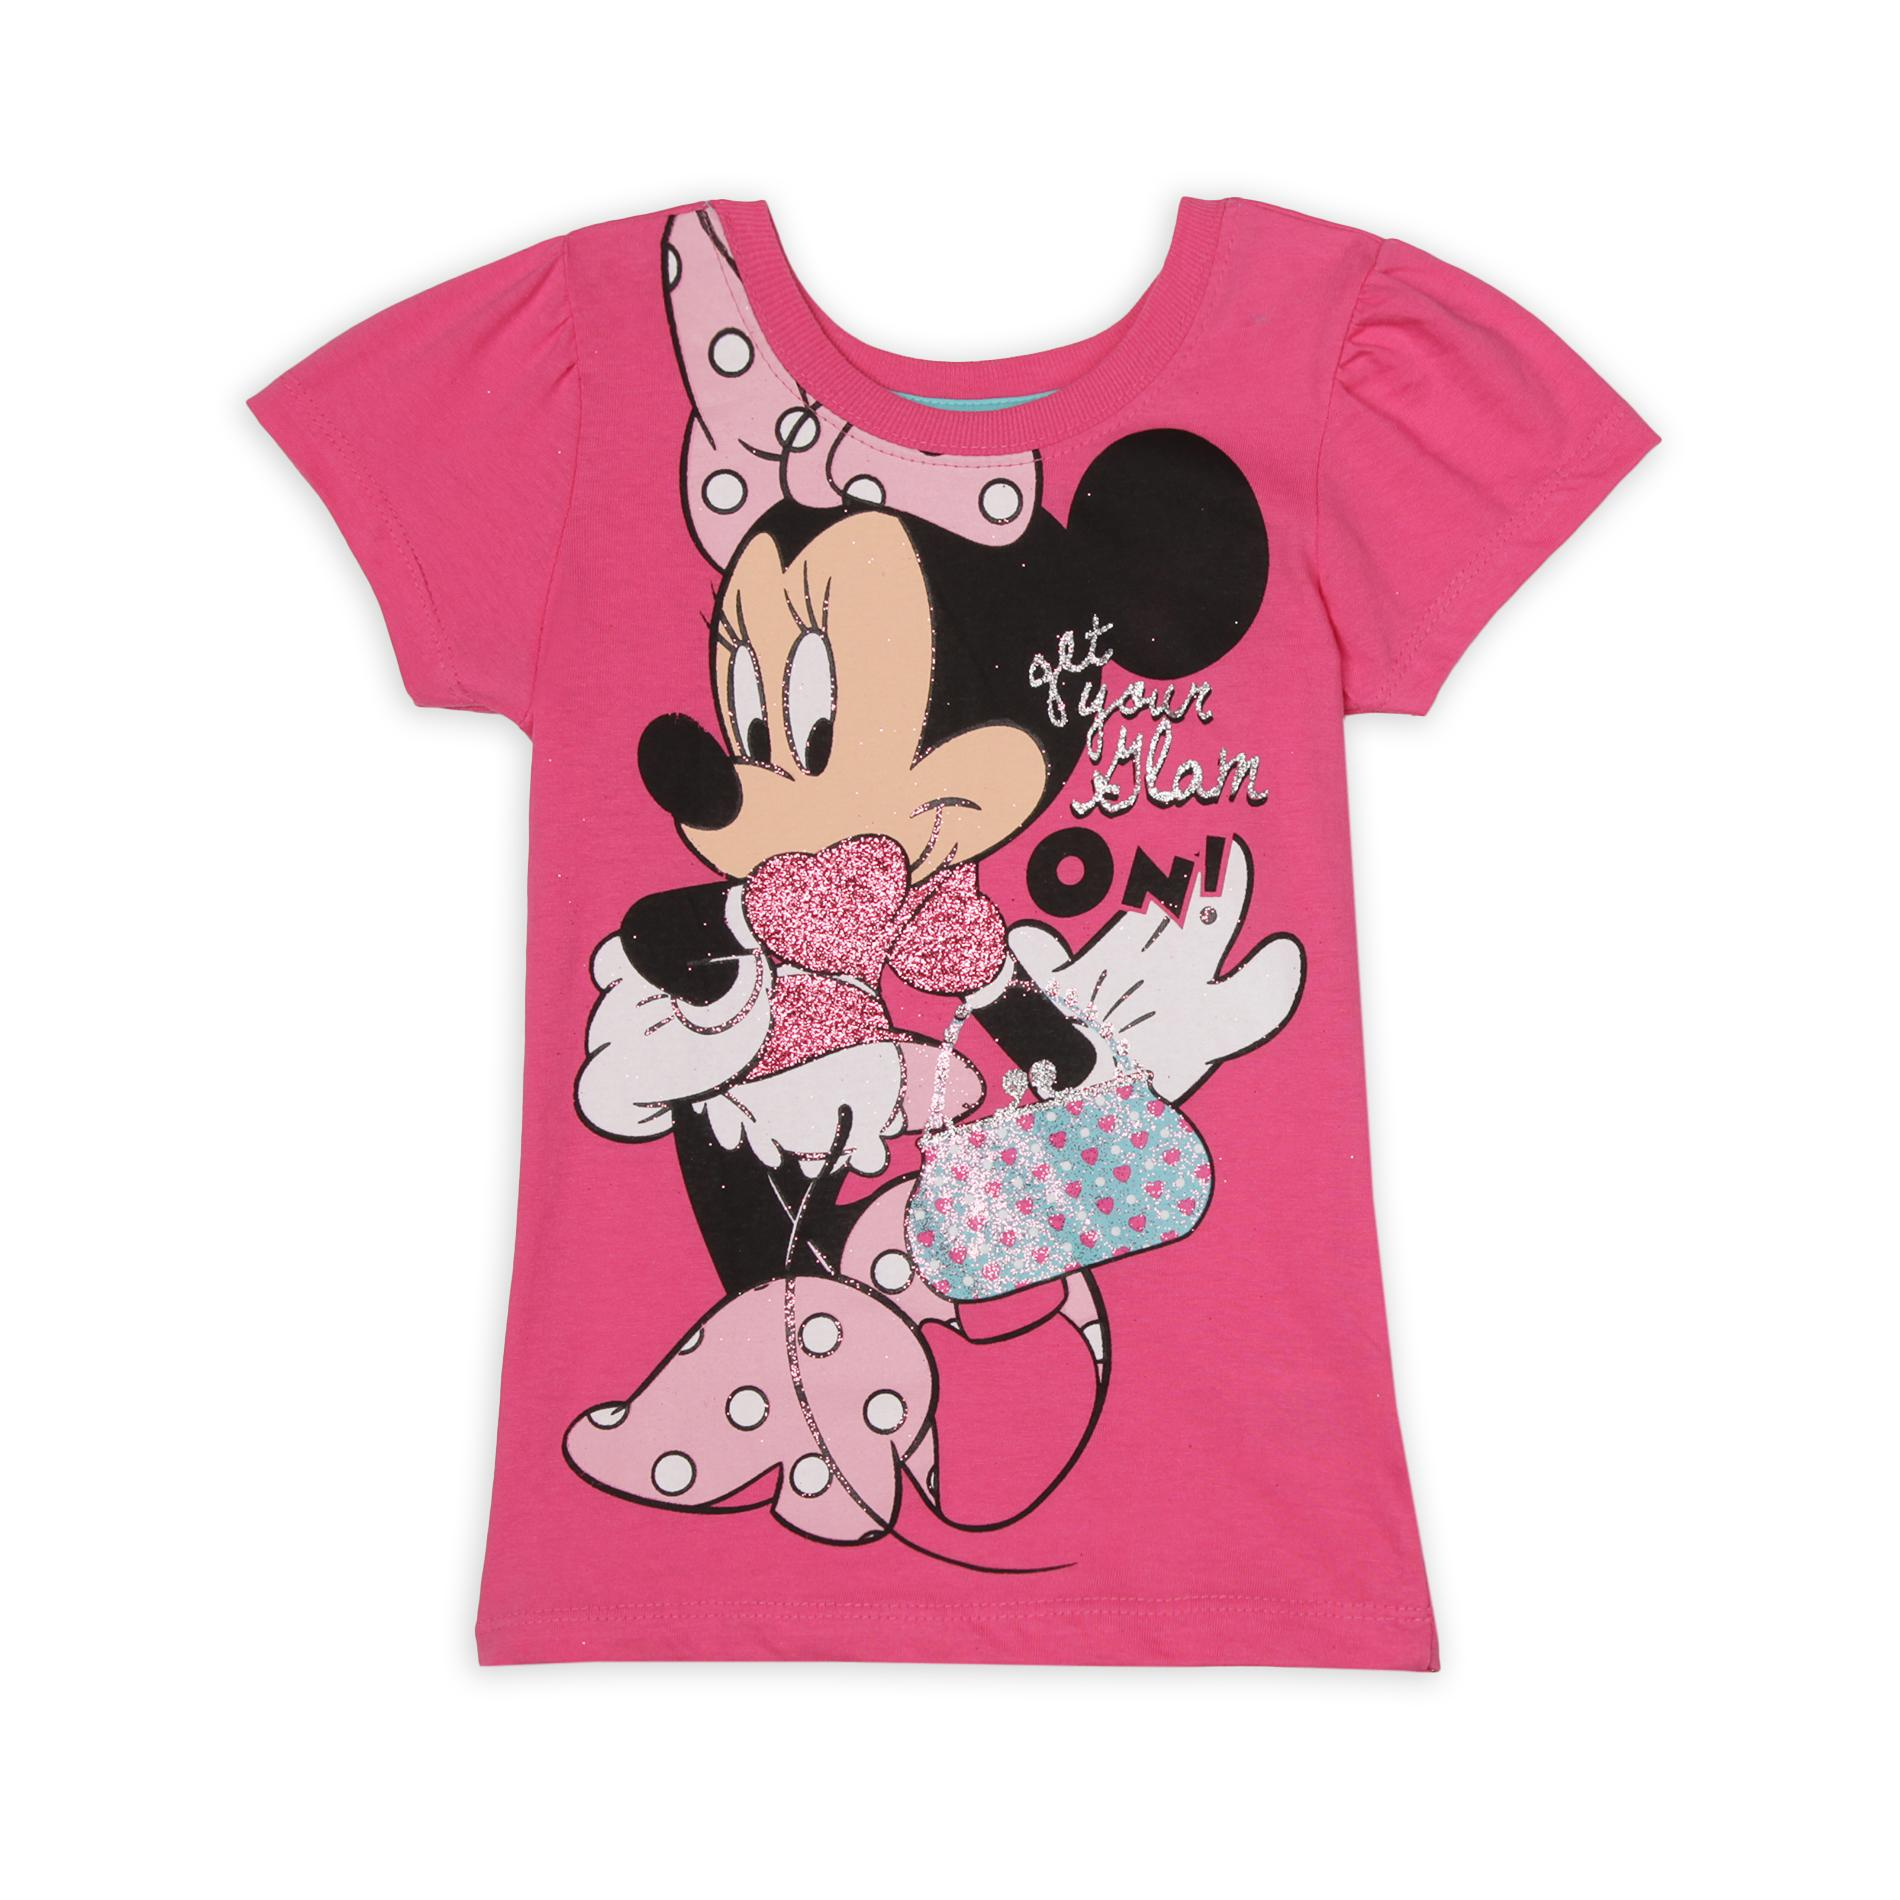 Disney Minnie Mouse Girl's Graphic T-Shirt - Glam